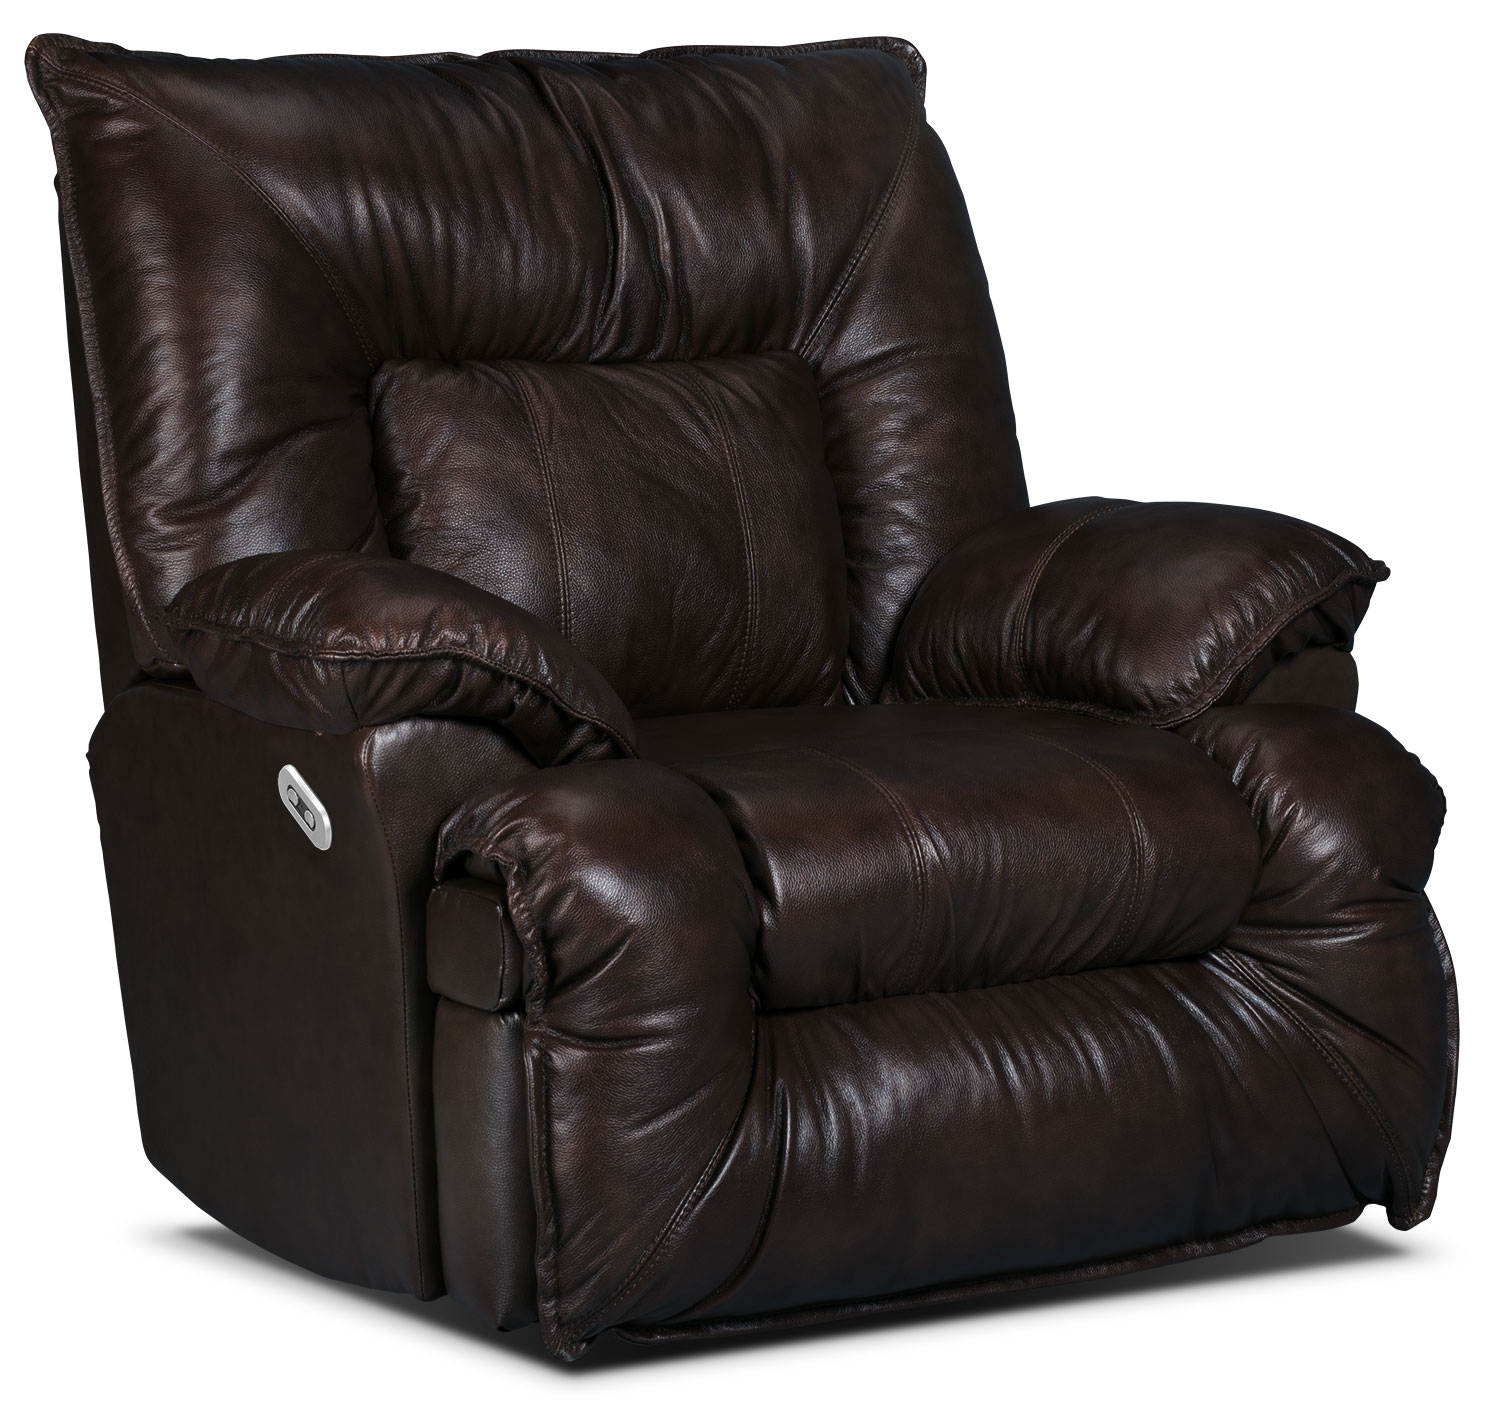 Living Room Furniture - Designed2B Recliner 7726 Leather-Look Fabric Power Lay-Flat Recline Chair - Java